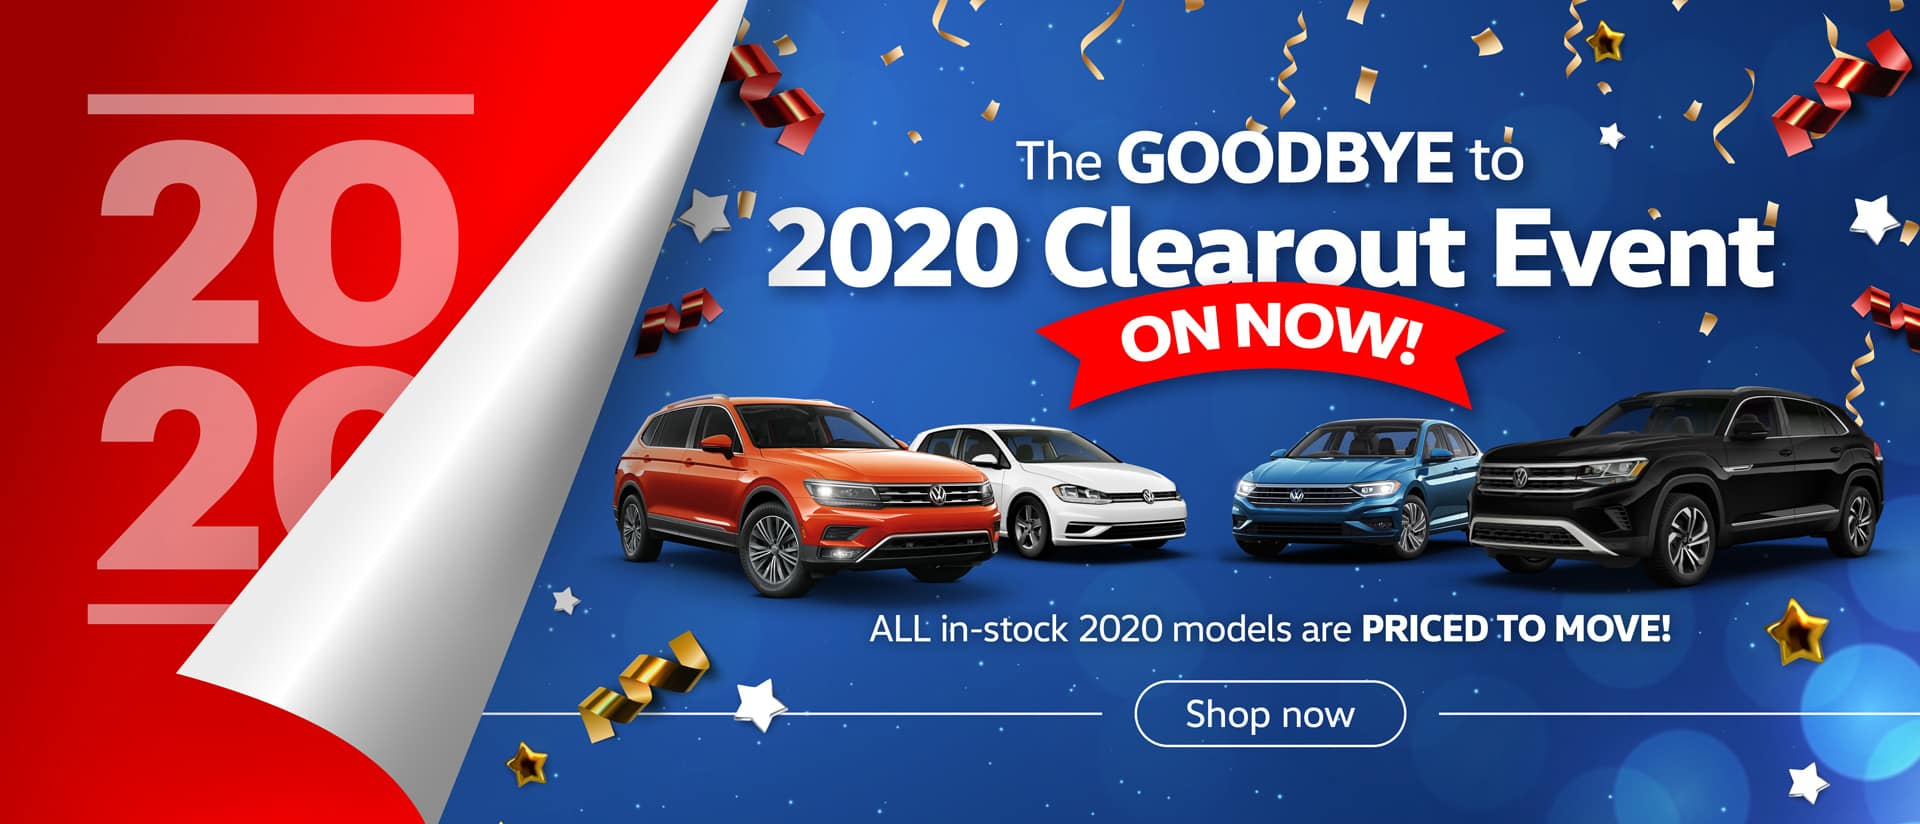 1438253_VW_GoodBye2020_WB